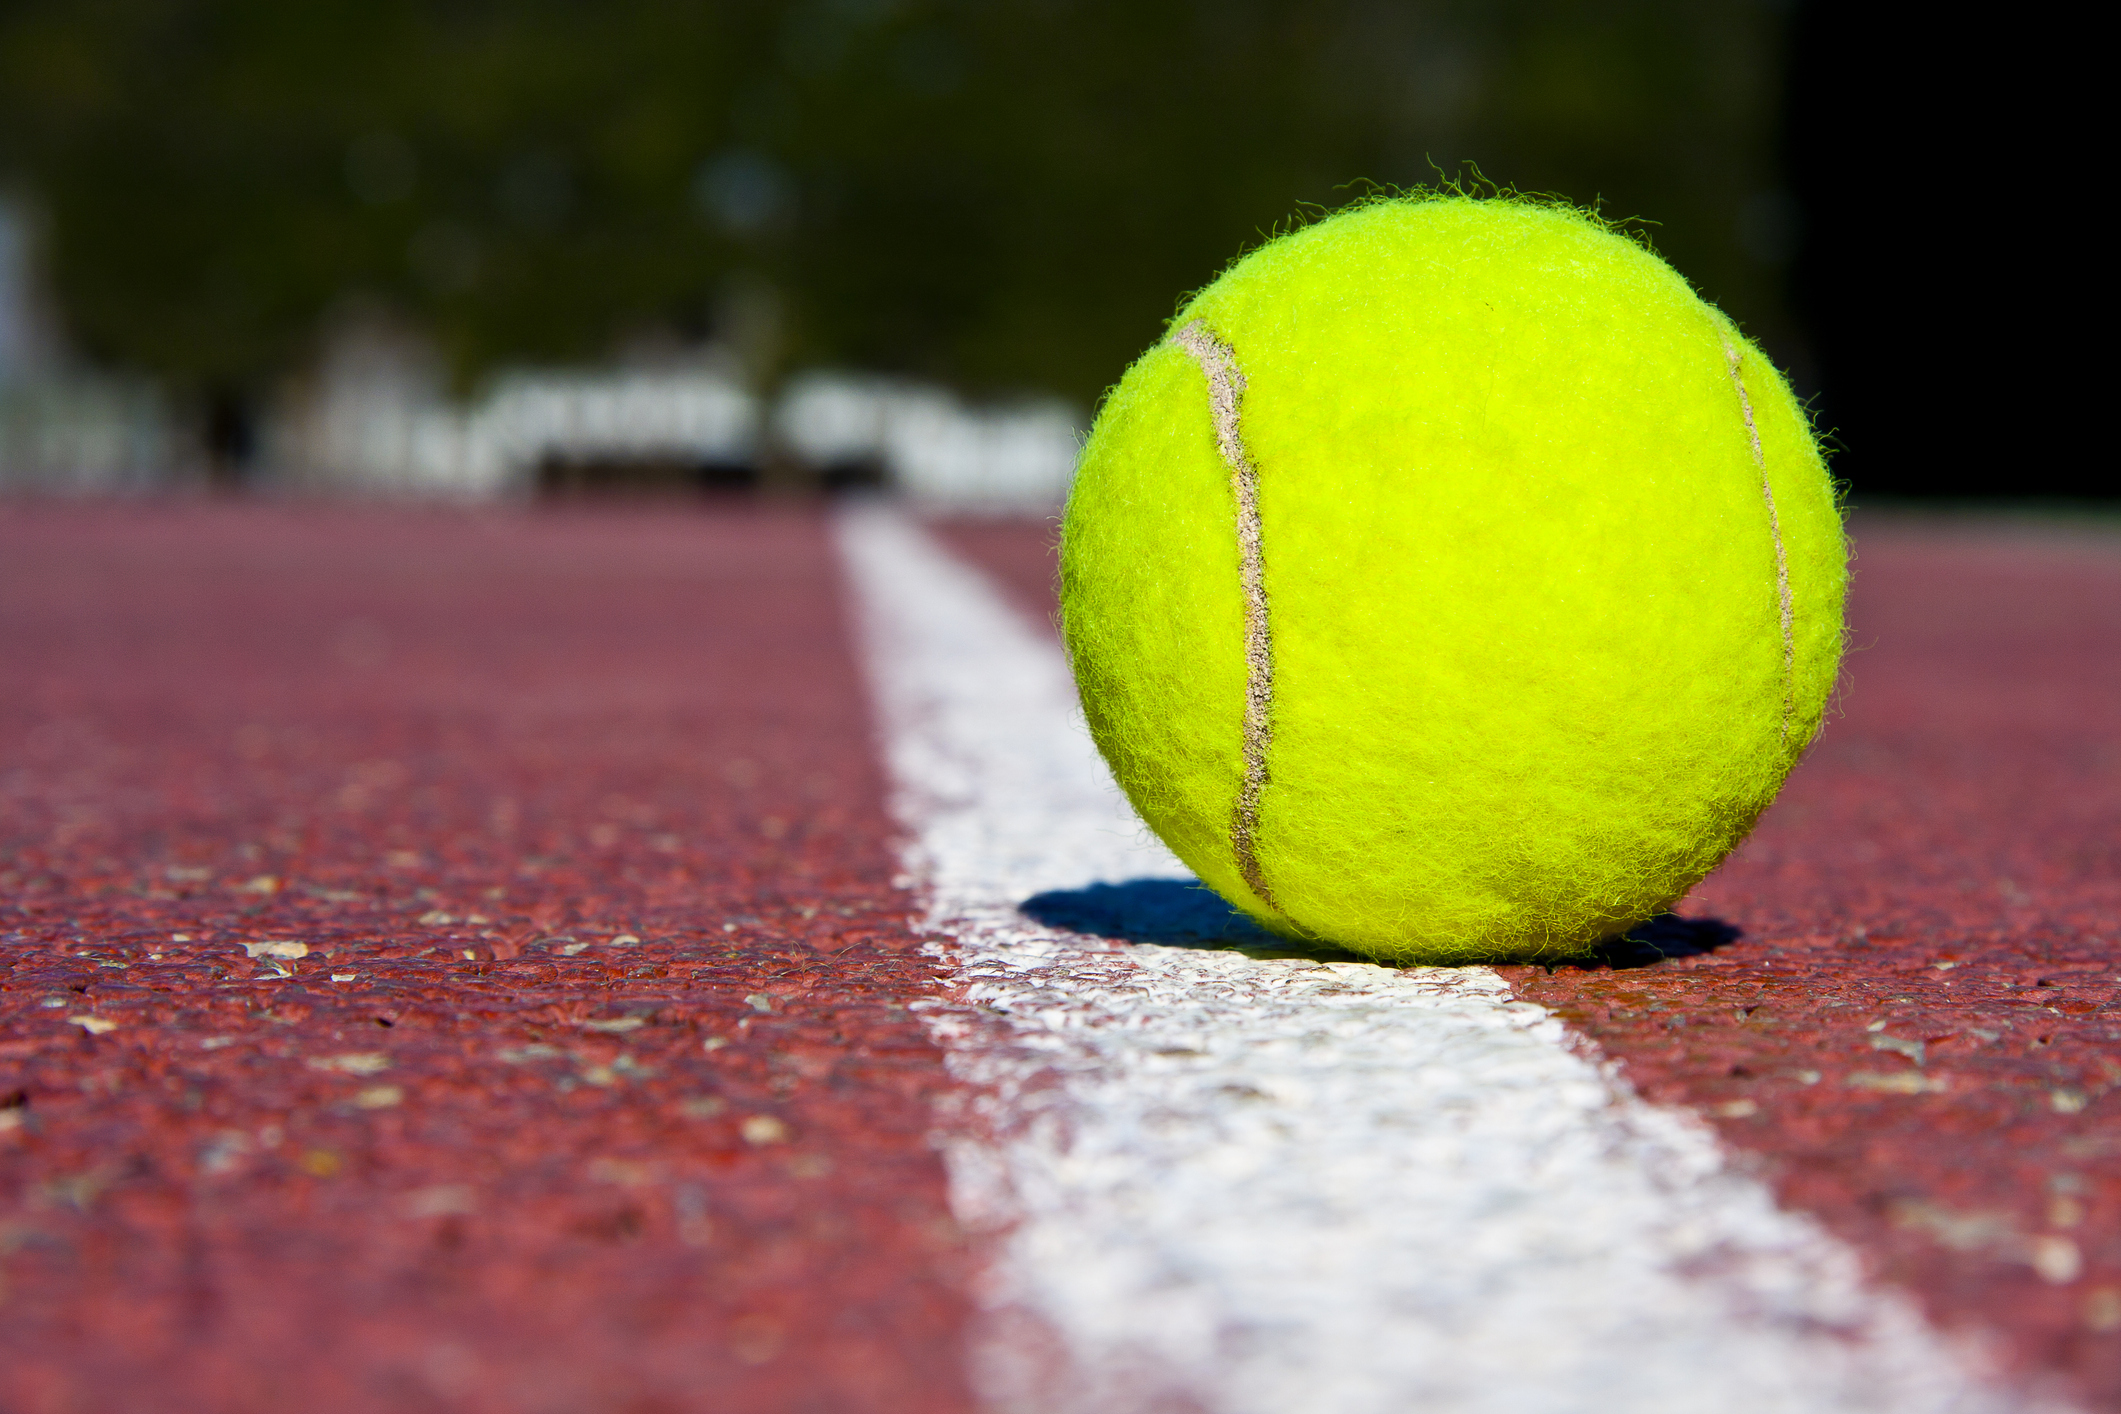 Tennis ball on tennis court. (Getty Images)